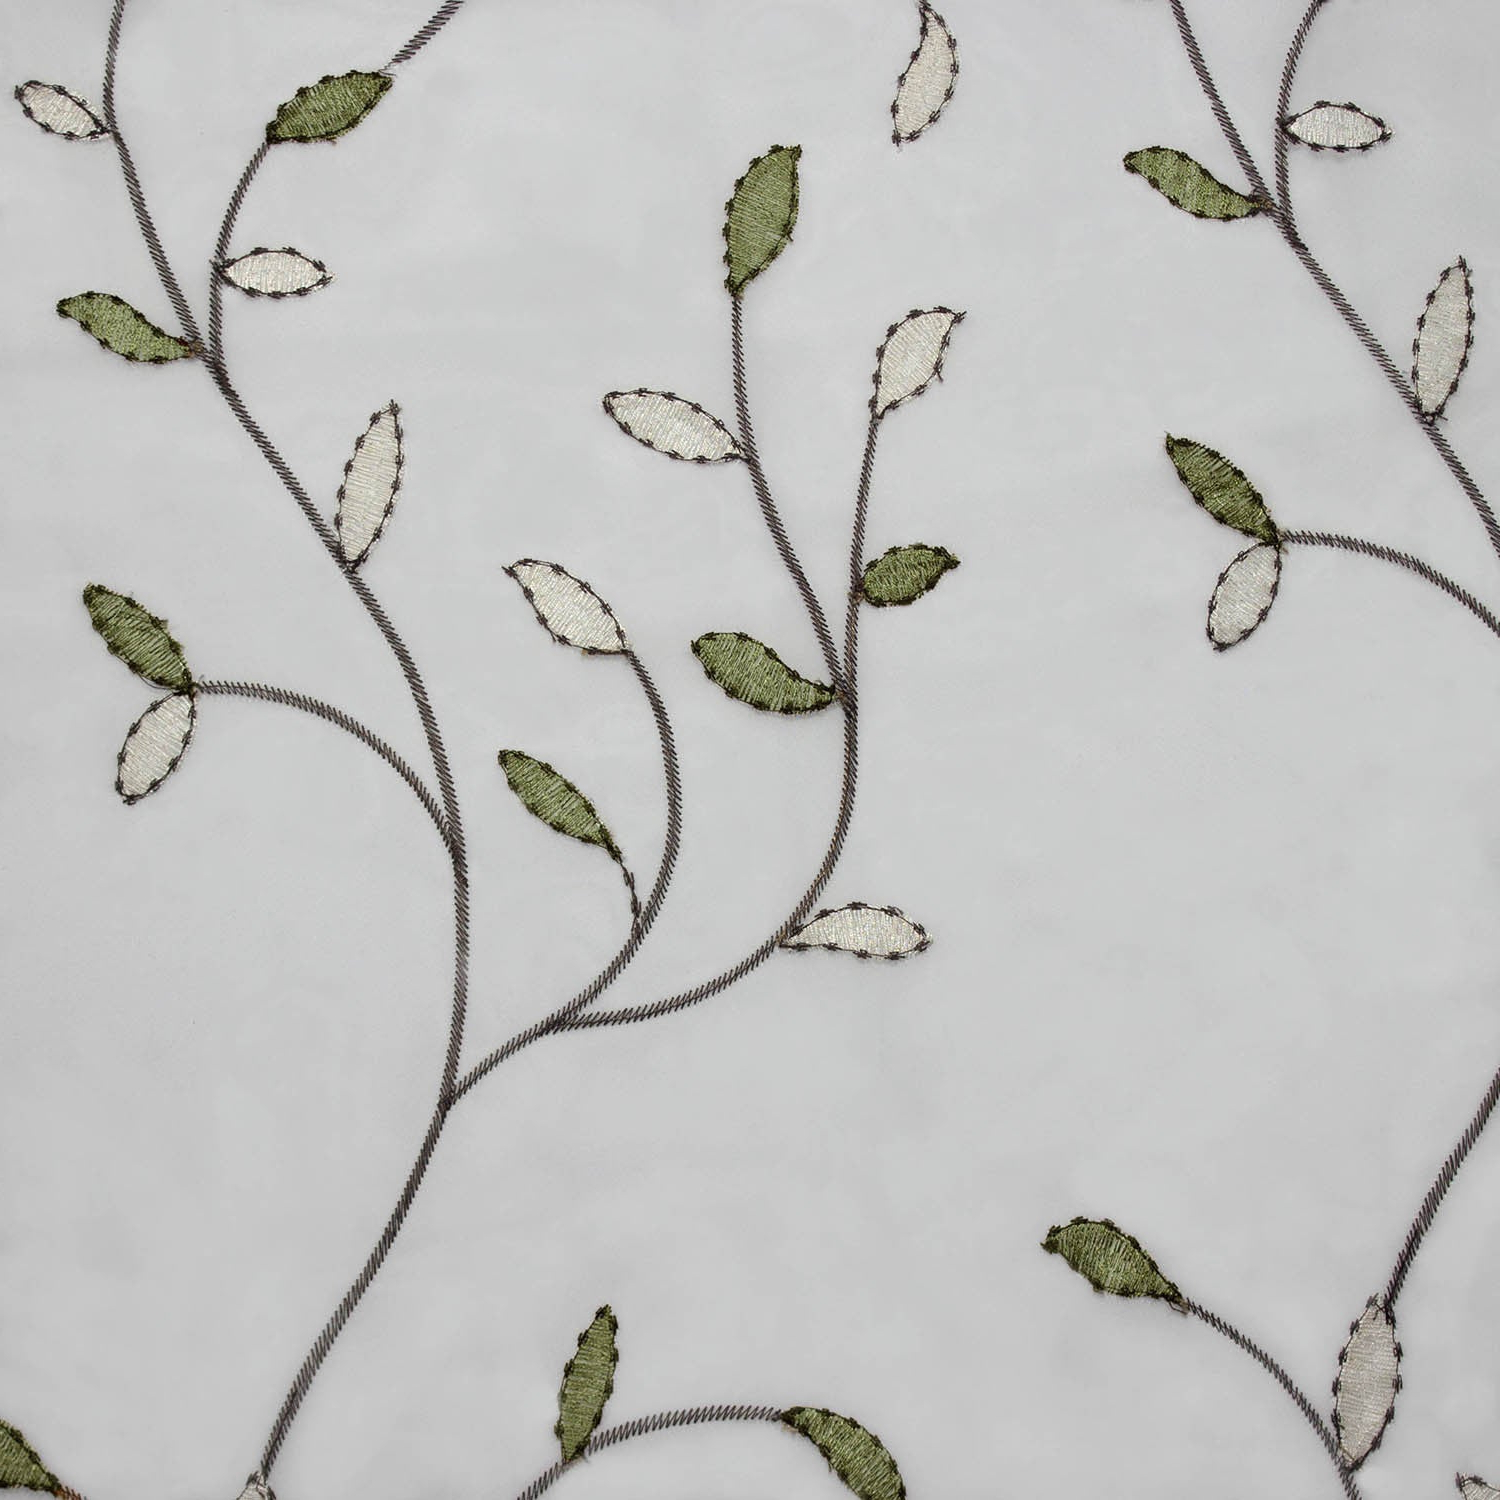 Wavy Leaves Embroidered Sheer Extra Wide 84 Inch Grommet Curtain Panel – 54  X 84 For Well Known Wavy Leaves Embroidered Sheer Extra Wide Grommet Curtain Panels (View 9 of 20)